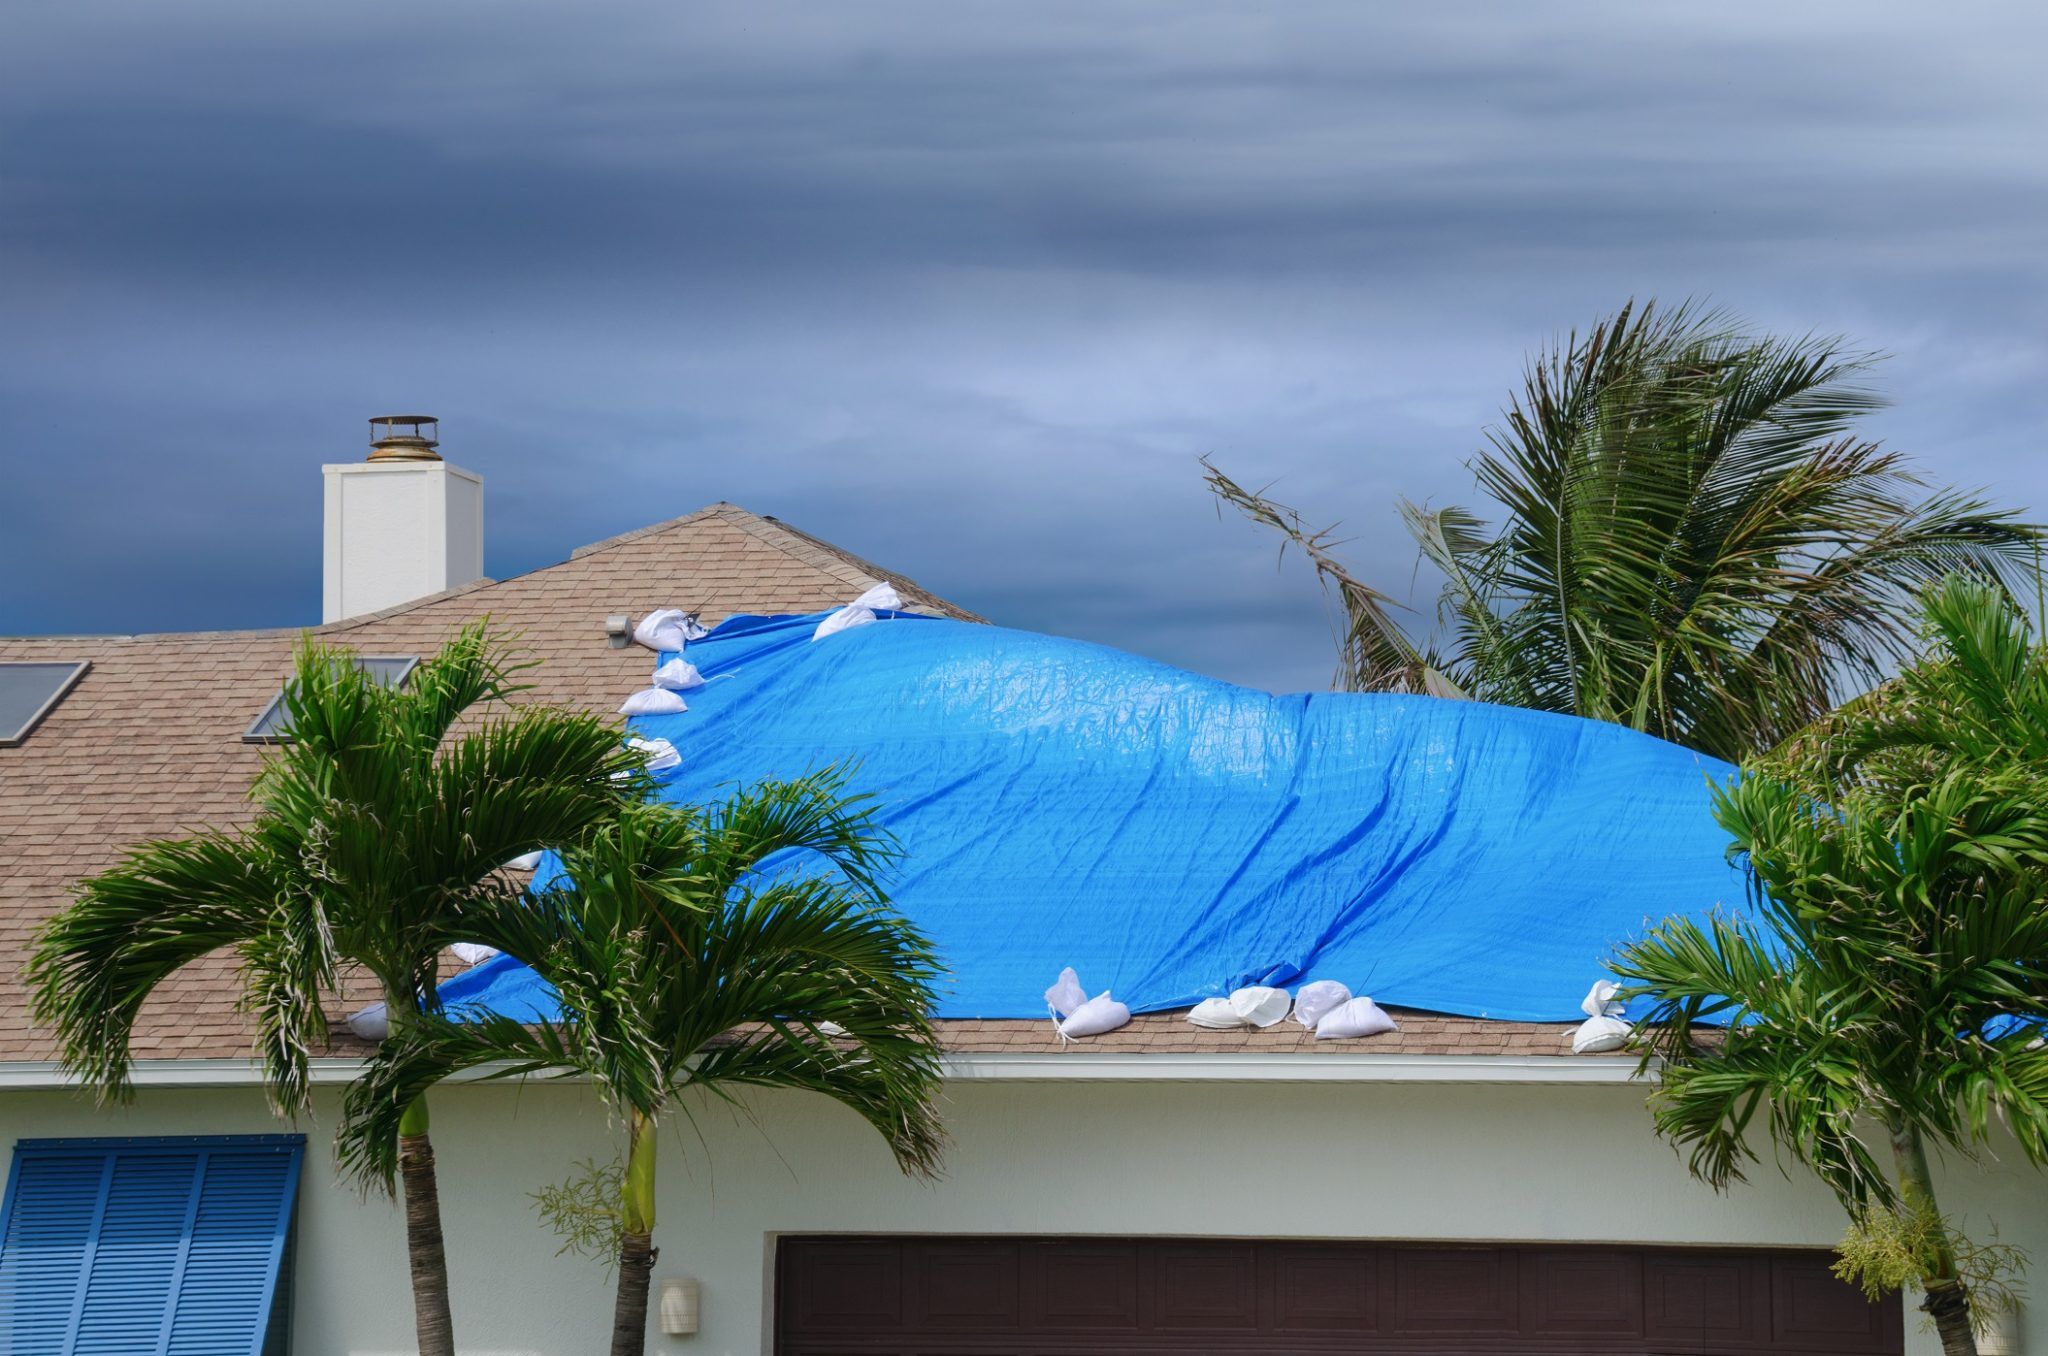 Homeowners Insurance 101 What Does Roof Exclusion In A Policy Mean